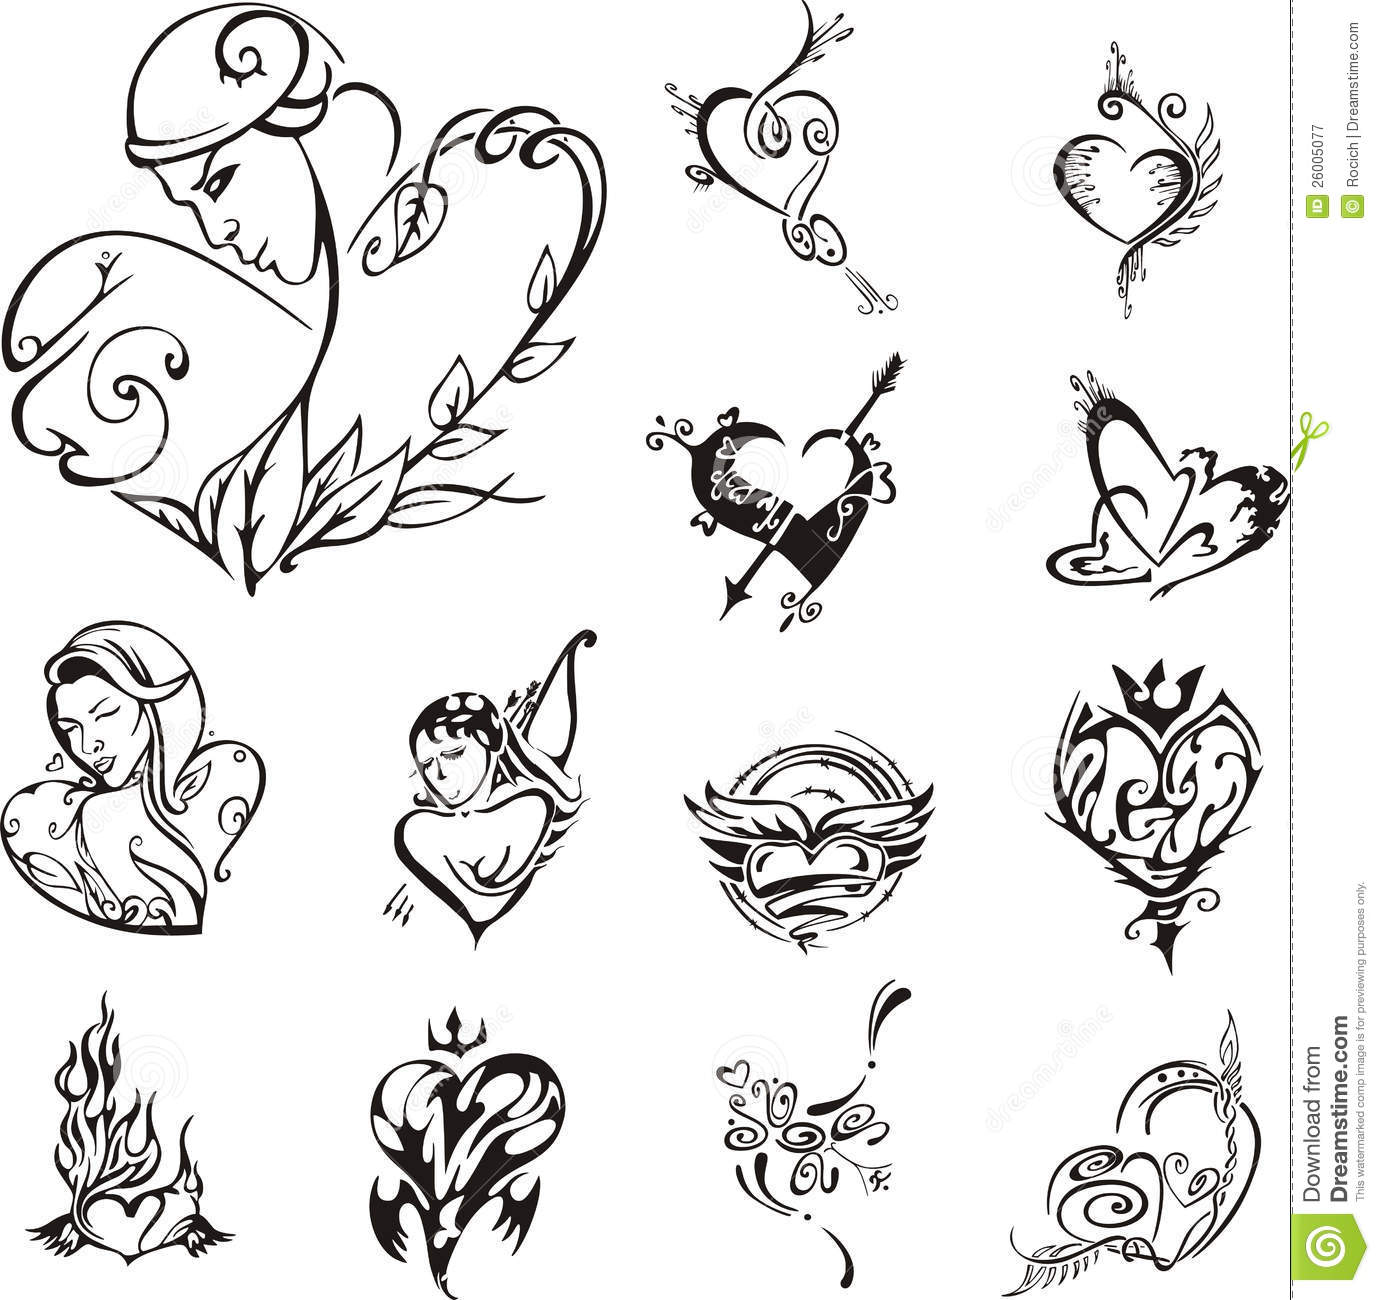 Stylized heart designs set of black and white vector illustrations